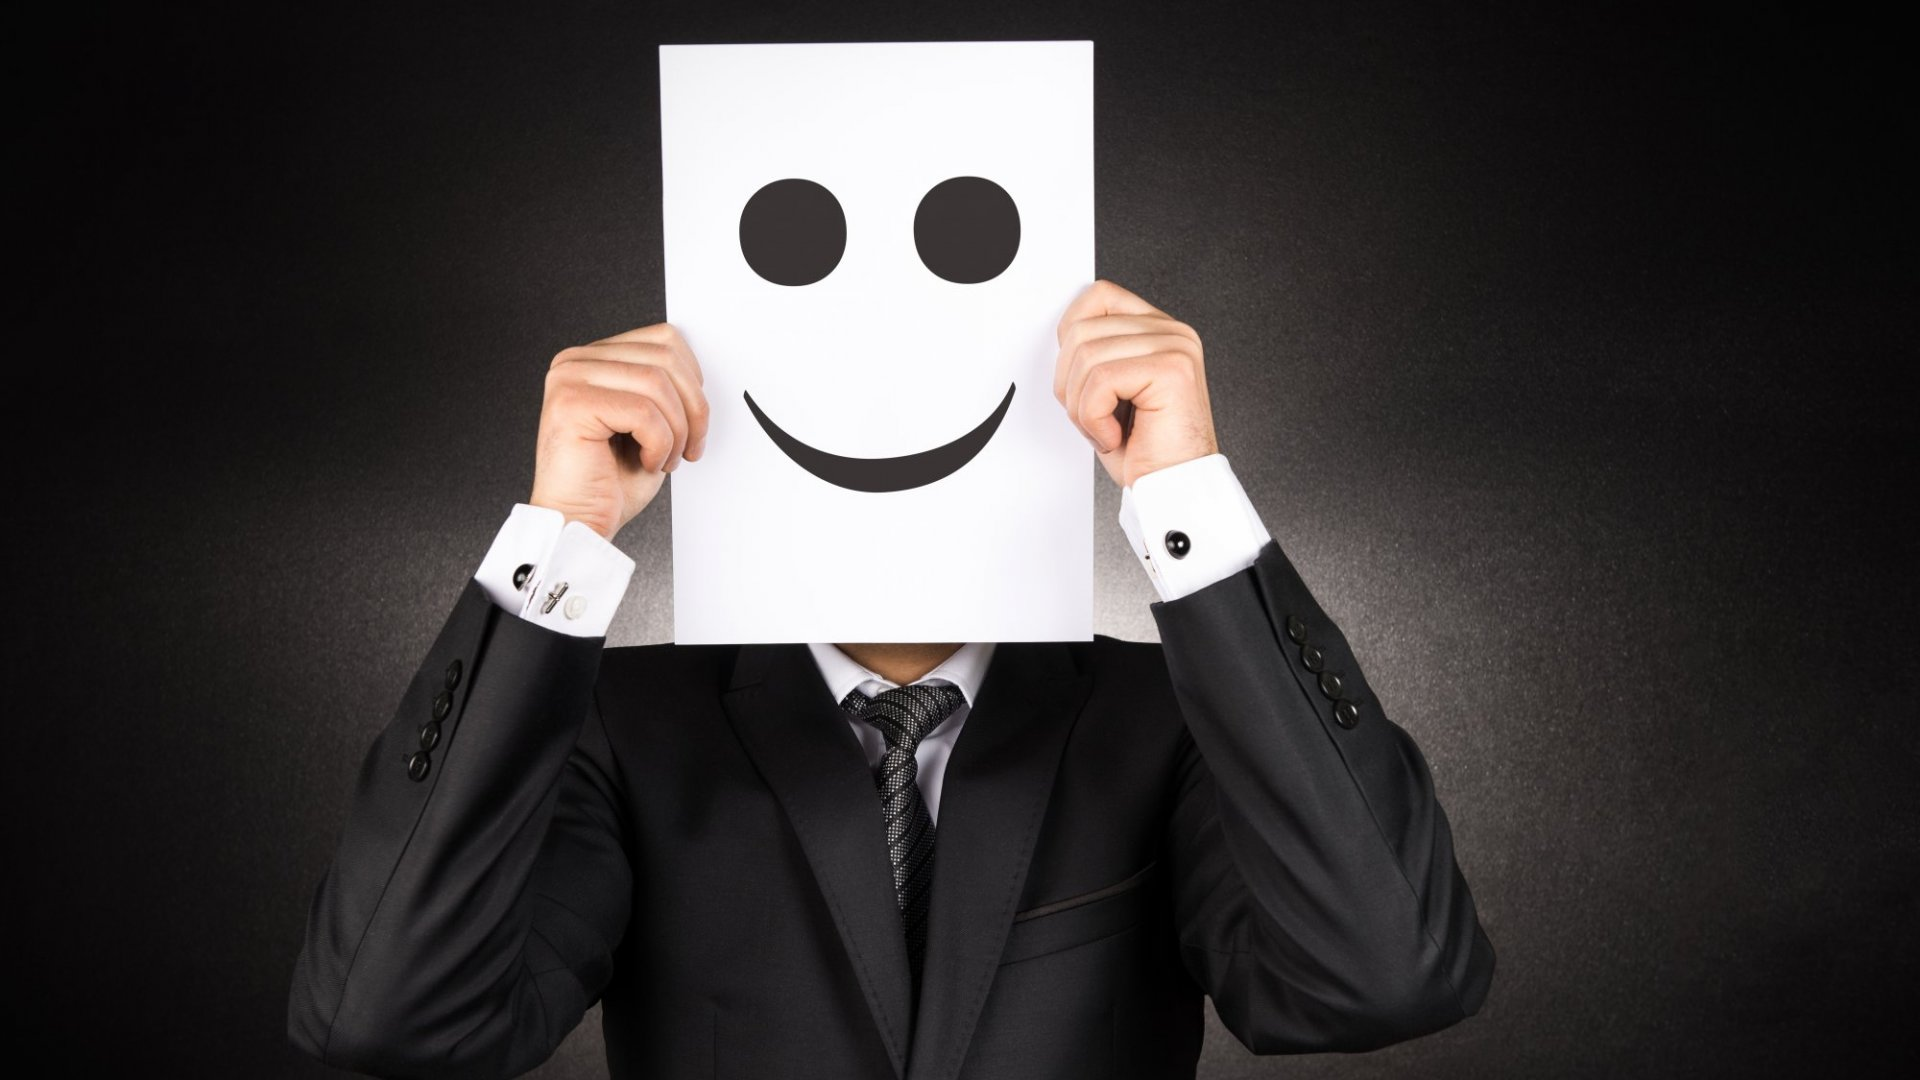 3 Powerful Ways To Stay Positive